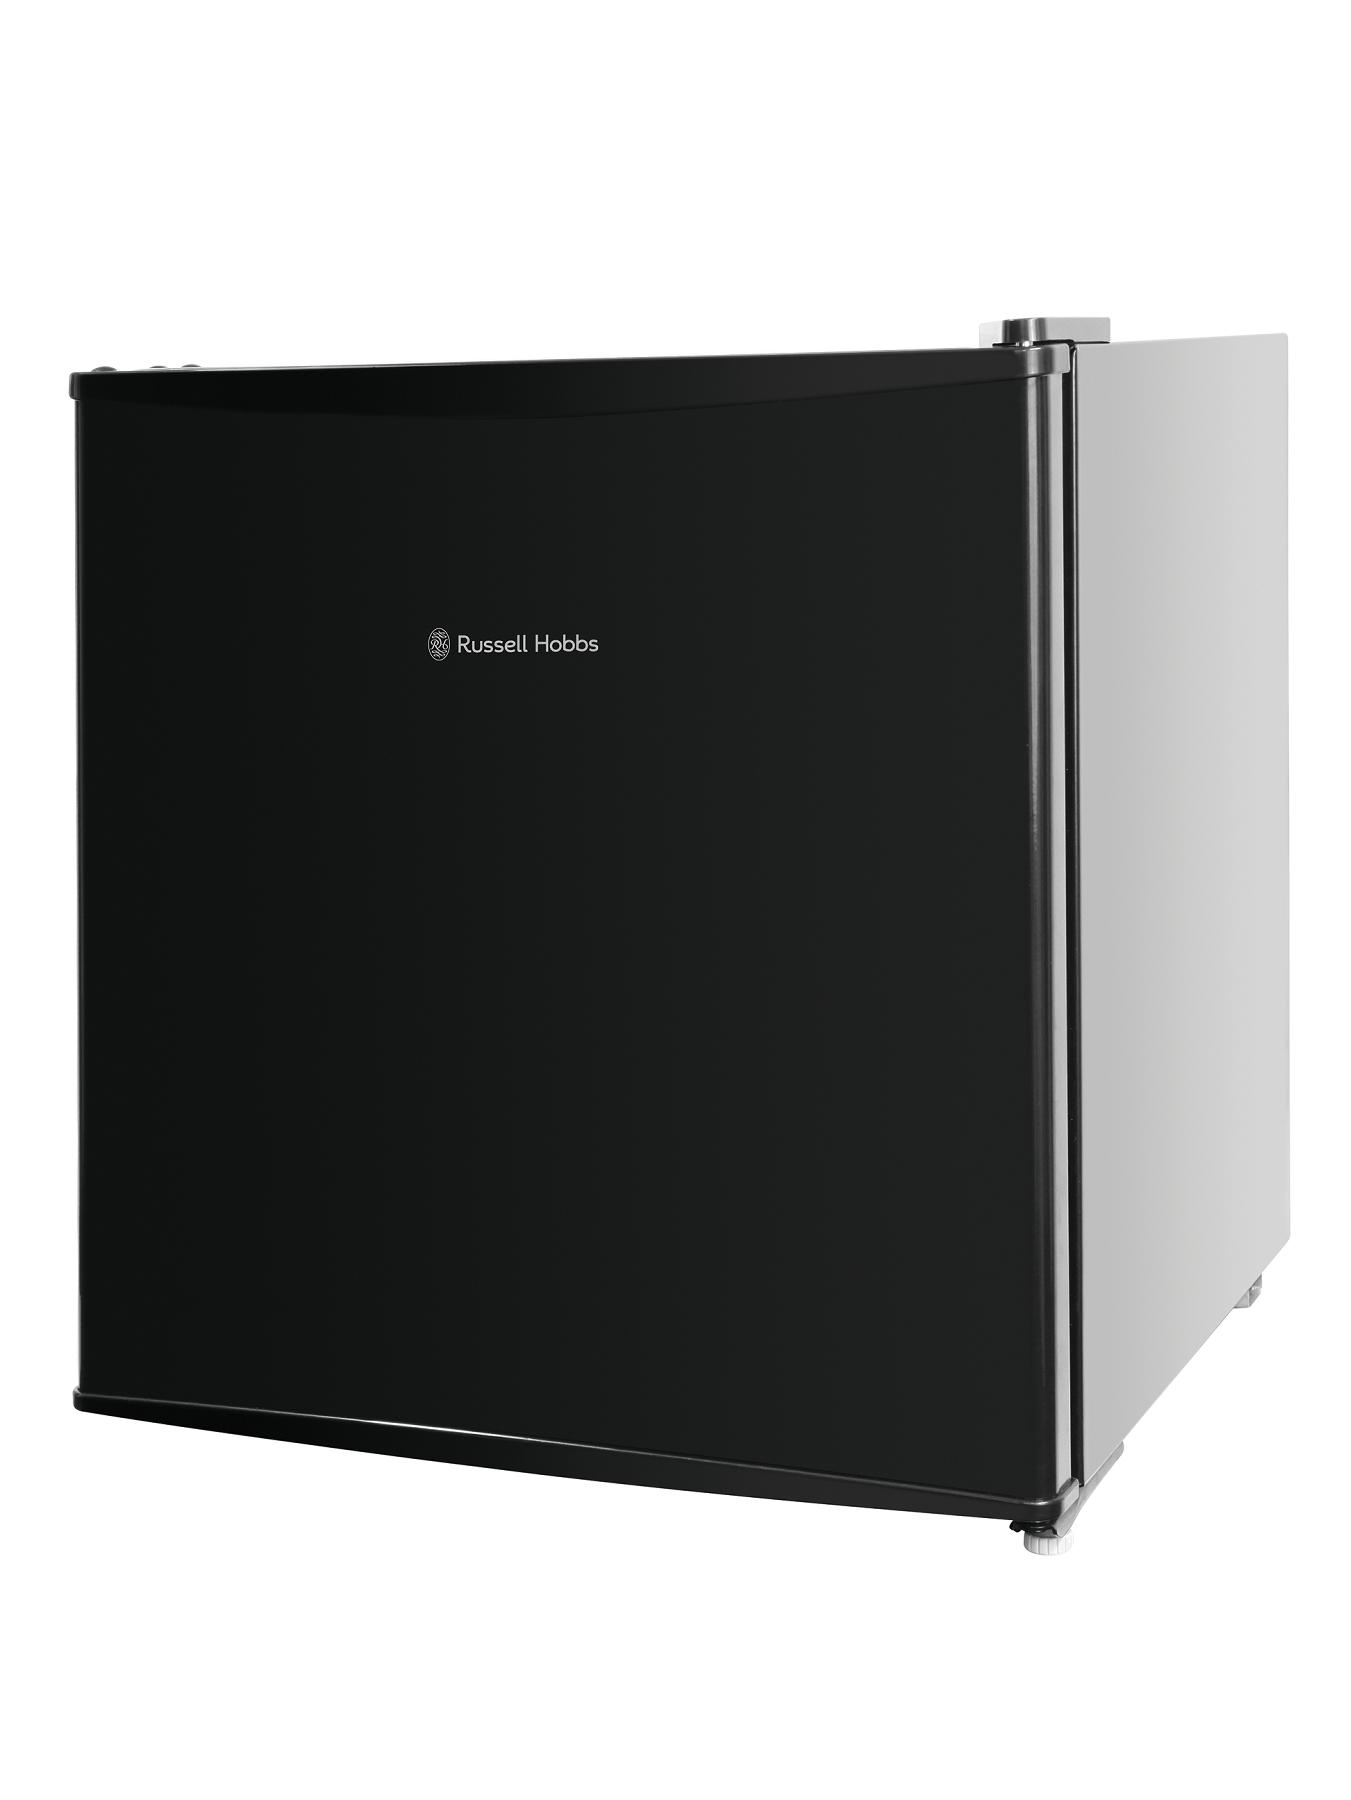 RHTTFZ1 Table Top Freezer - Black at Littlewoods